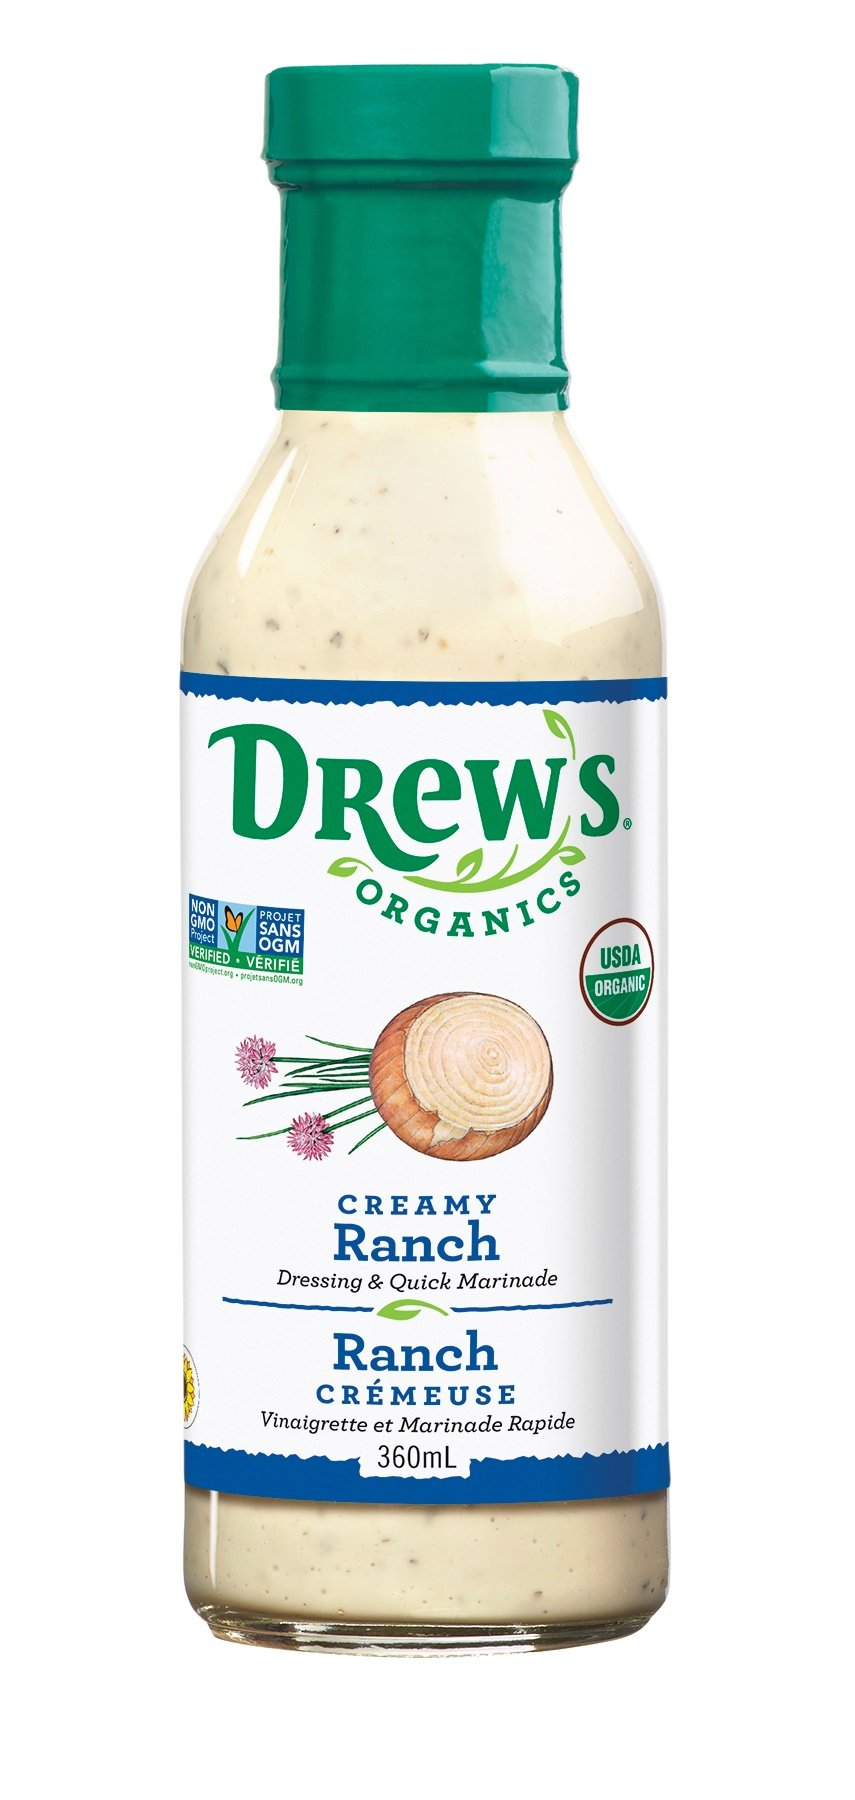 DREW'S, CREAMY RANCH